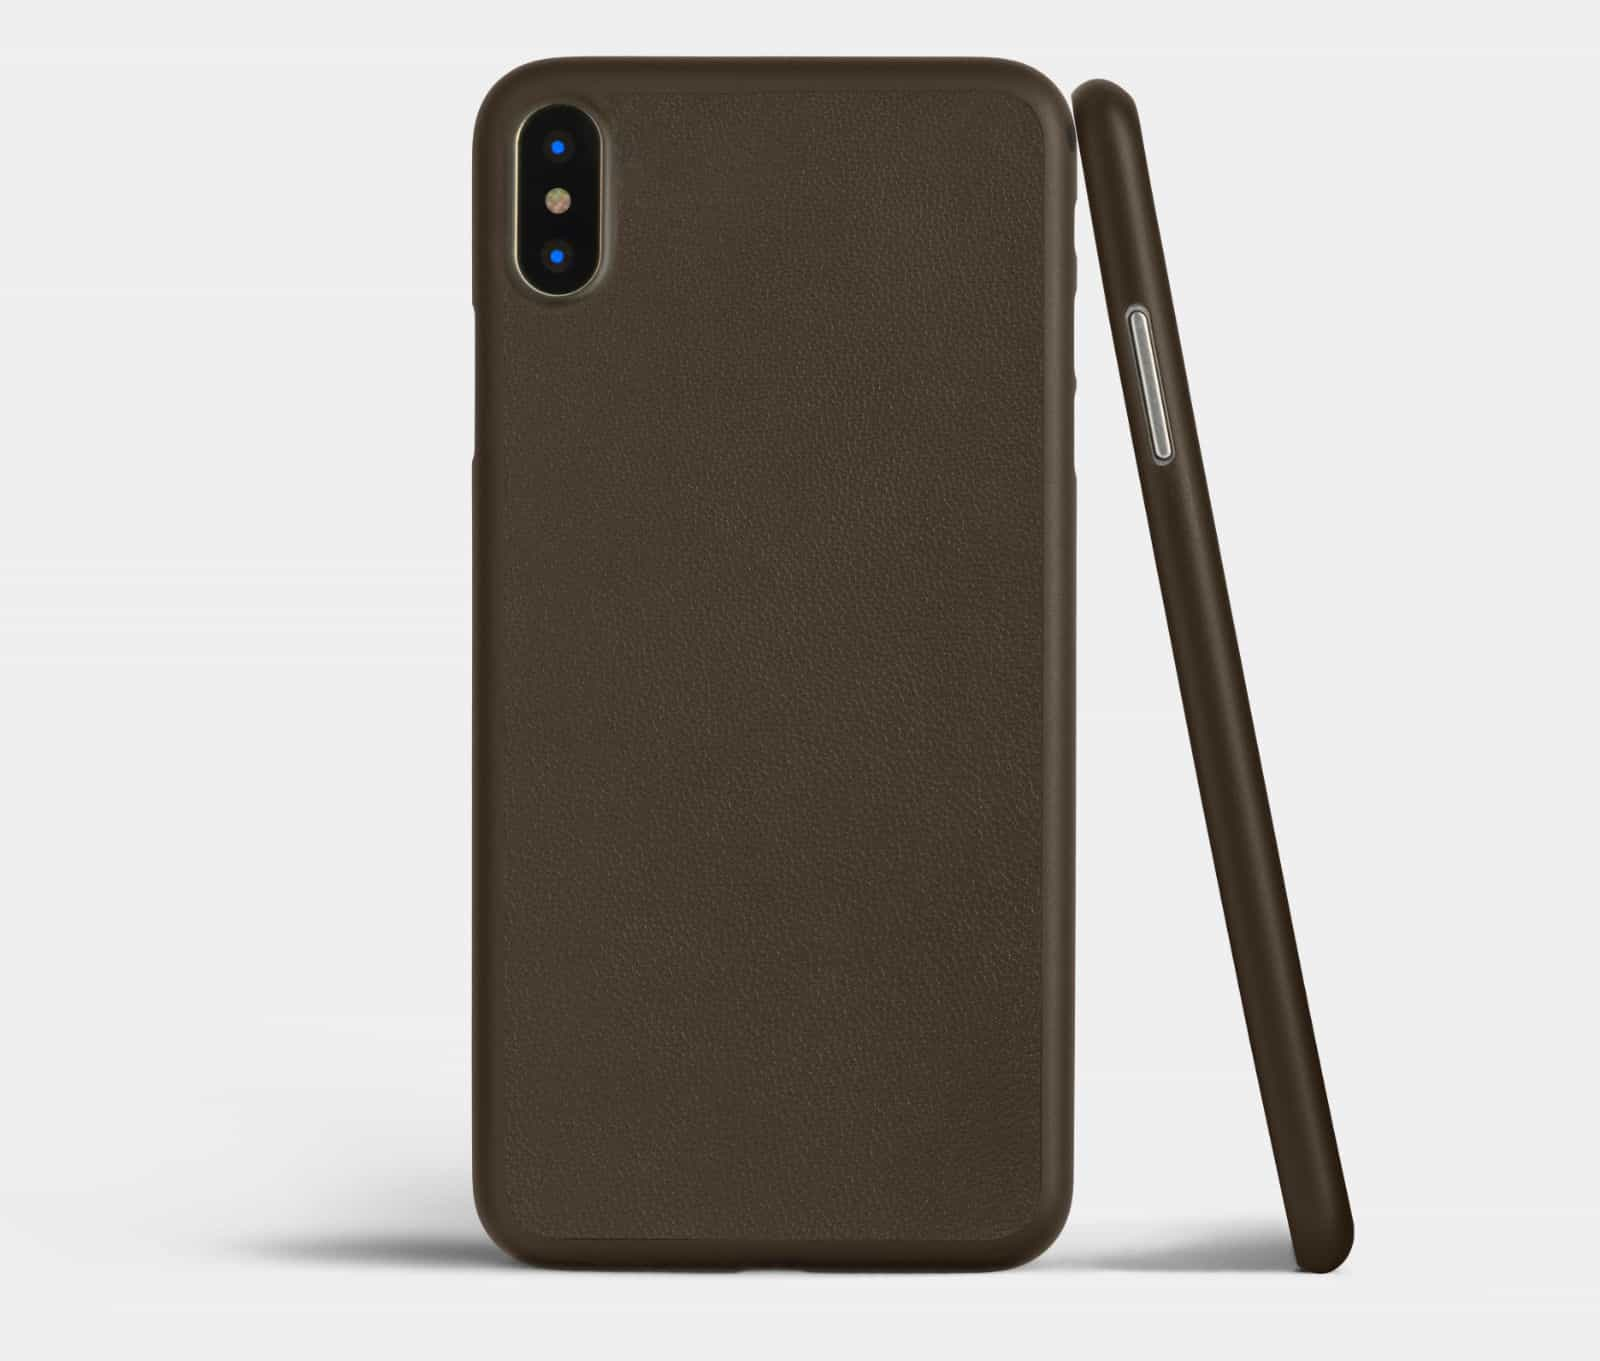 new styles a92bf dd29c Super-slim Totallee leather iPhone X case is a perfect fit | Cult of Mac